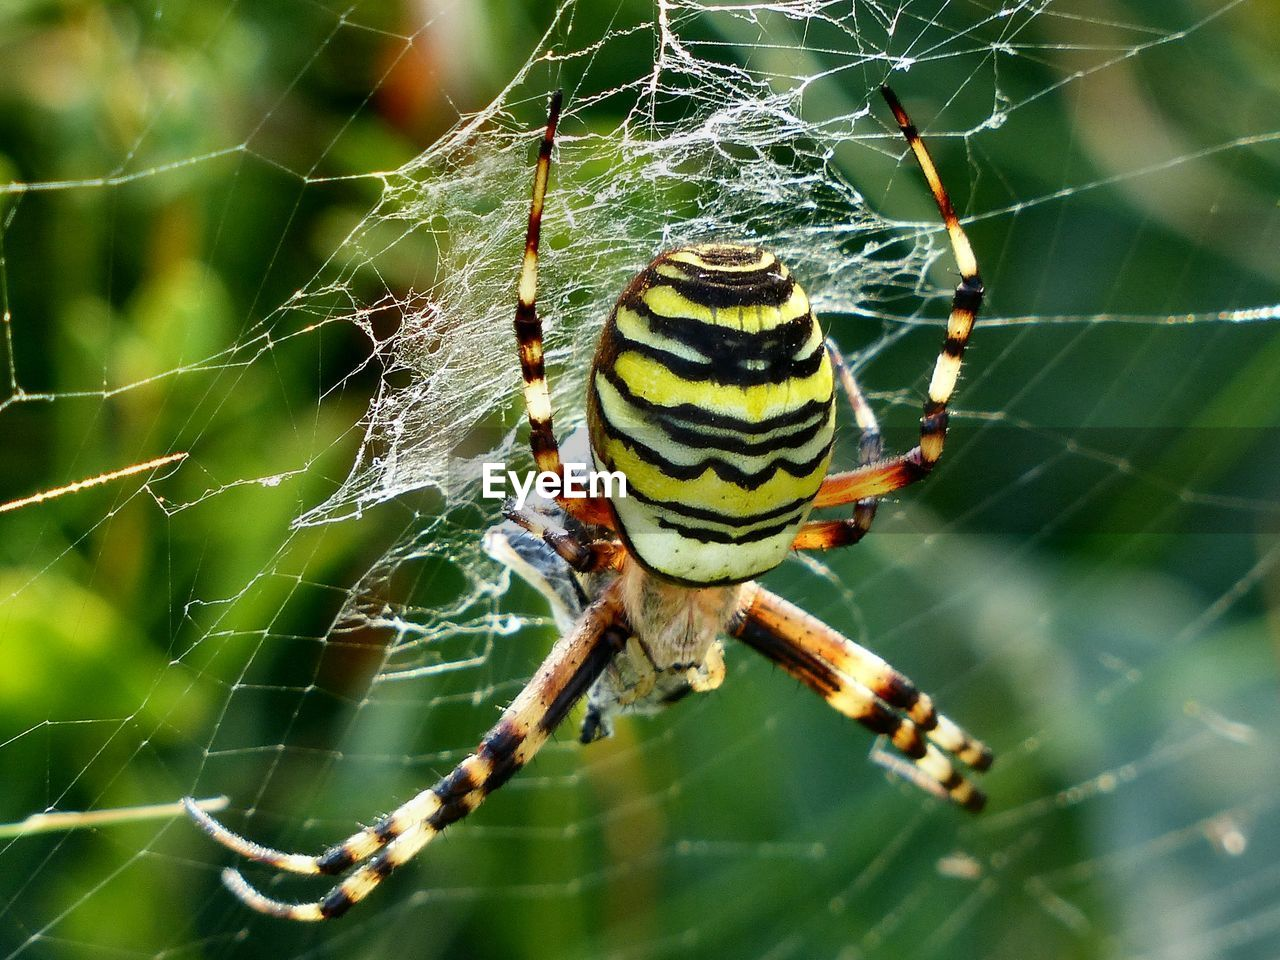 CLOSE-UP OF SPIDER ON WEB AGAINST BLURRED BACKGROUND